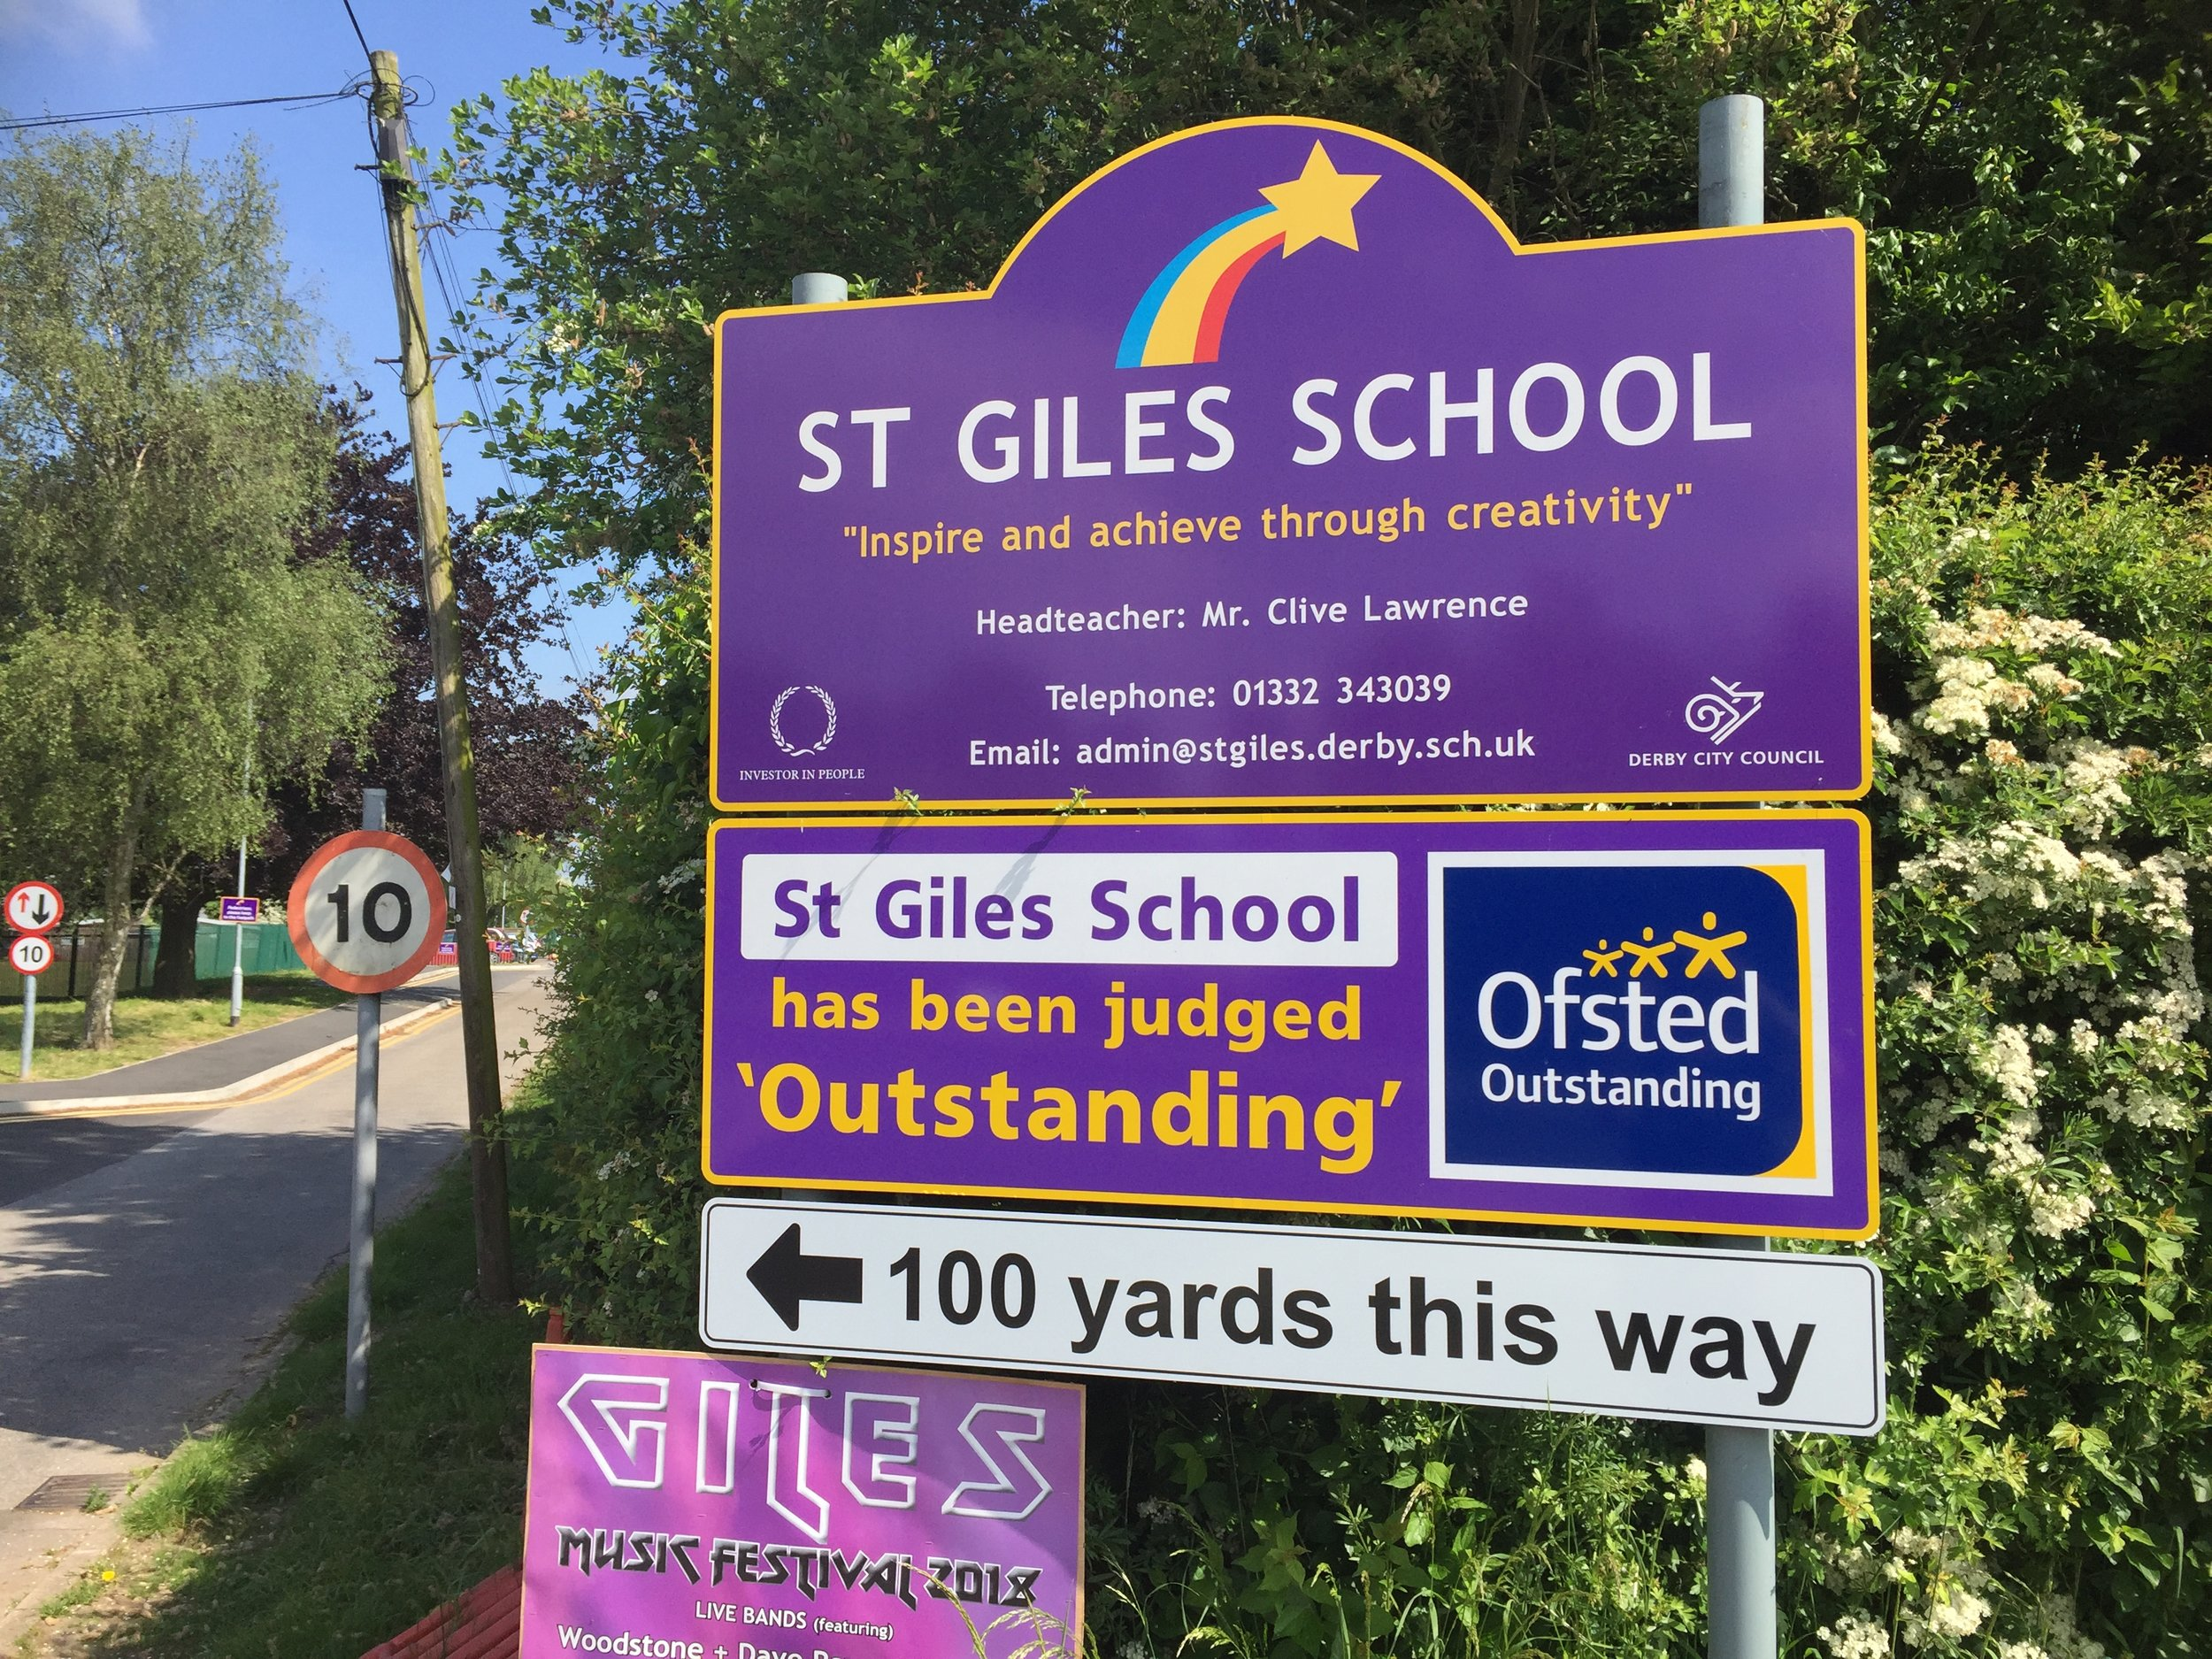 St Giles School in Derby. Penguin PR: public relations, media and communications in the East Midlands